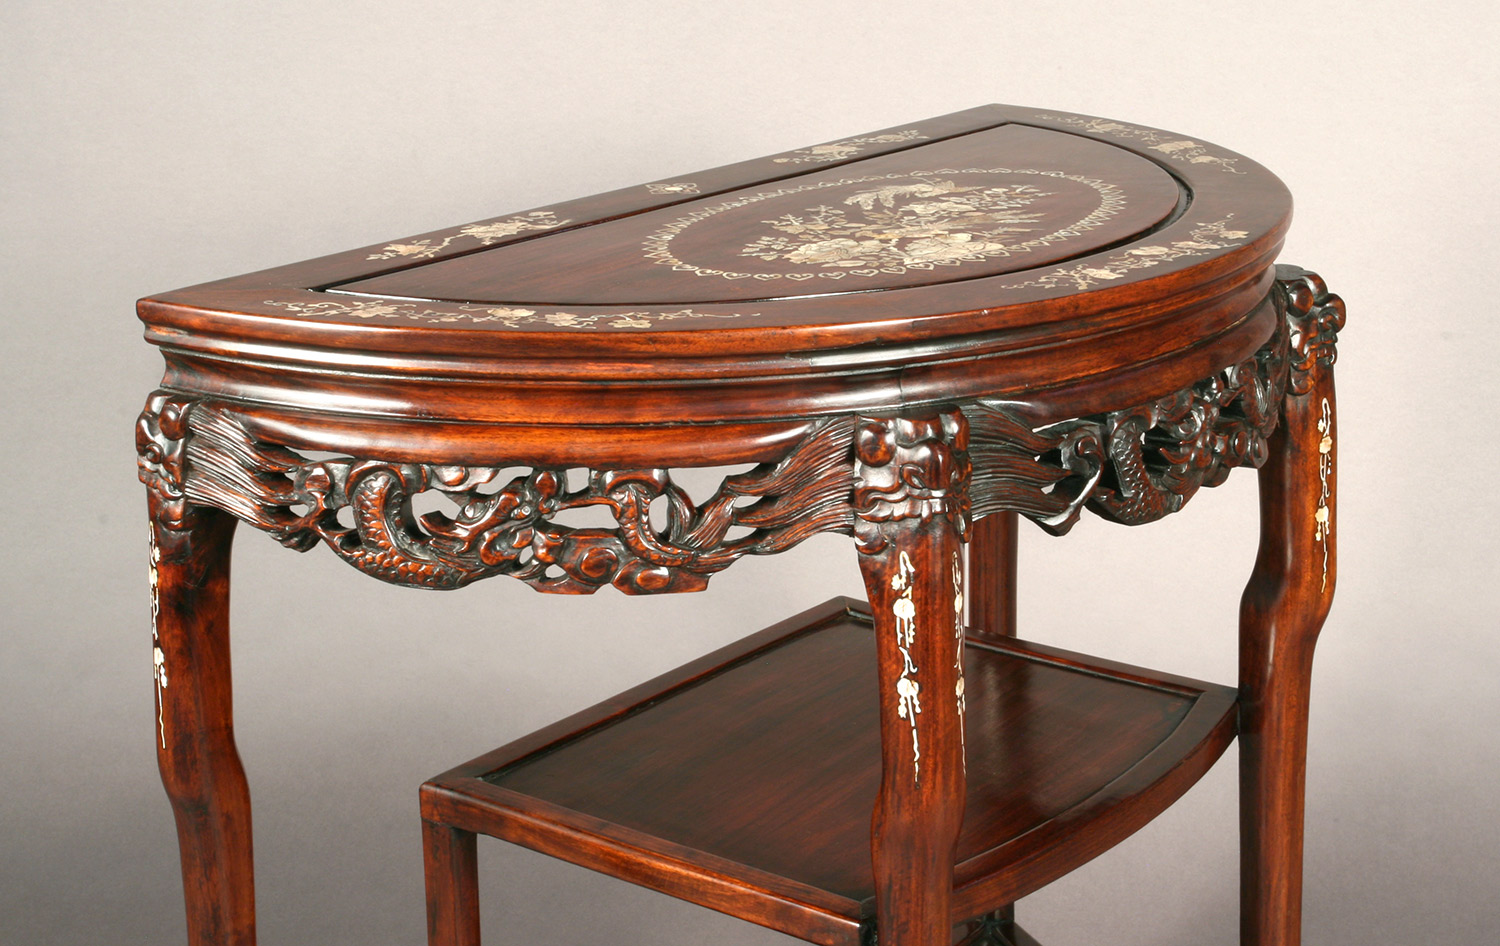 Chinese Rosewood Mother-of-Pearl Inlay Console Table with open carvings of dragons adorning the apron edge